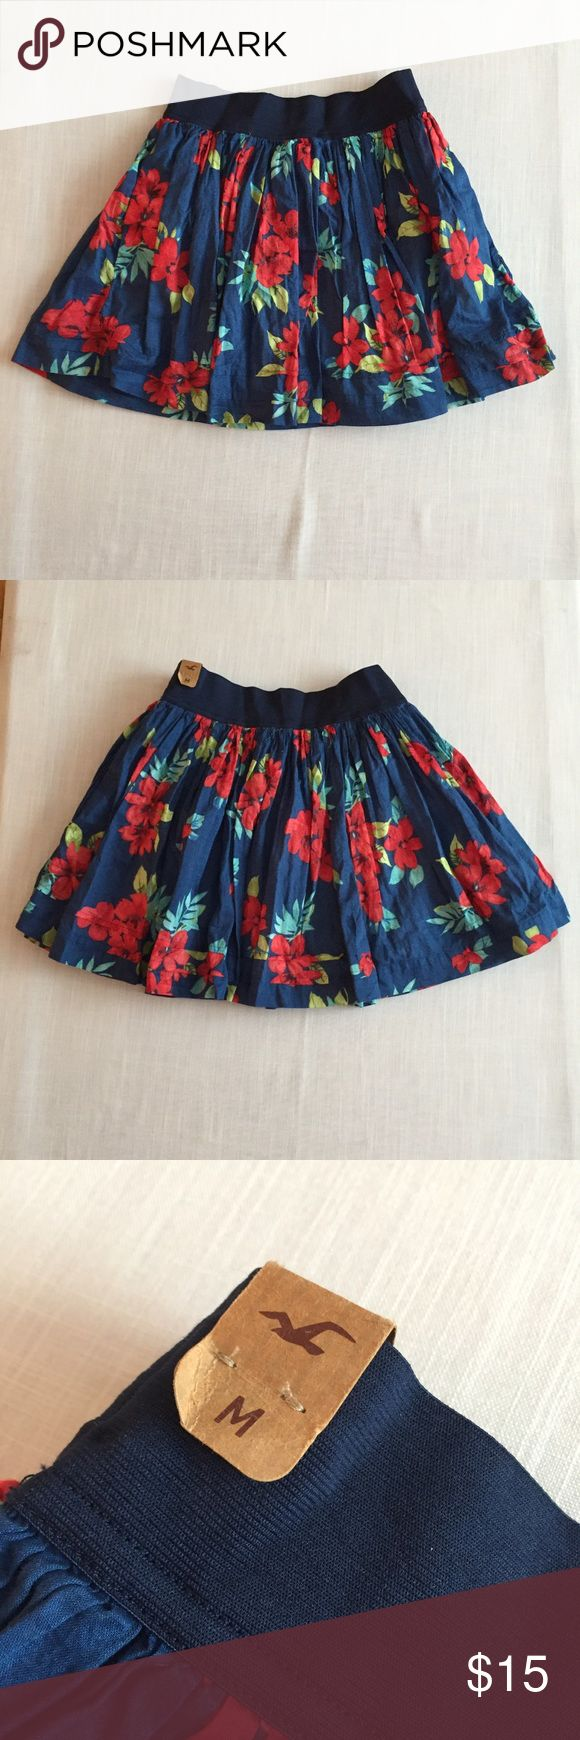 NWT Floral Hollister Skirt New with tags tropical floral skirt from Hollister. Hollister Skirts Circle & Skater